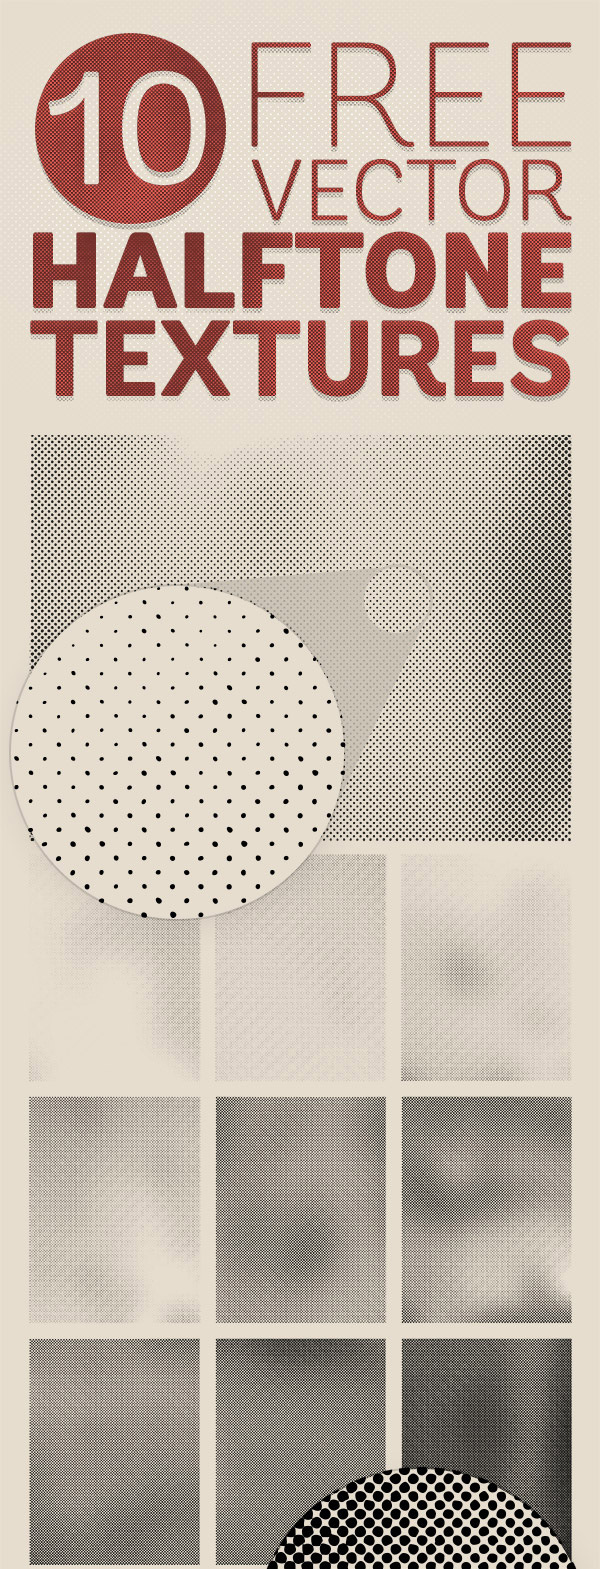 10-free-detailed-vector-halftone-texture-backgrounds